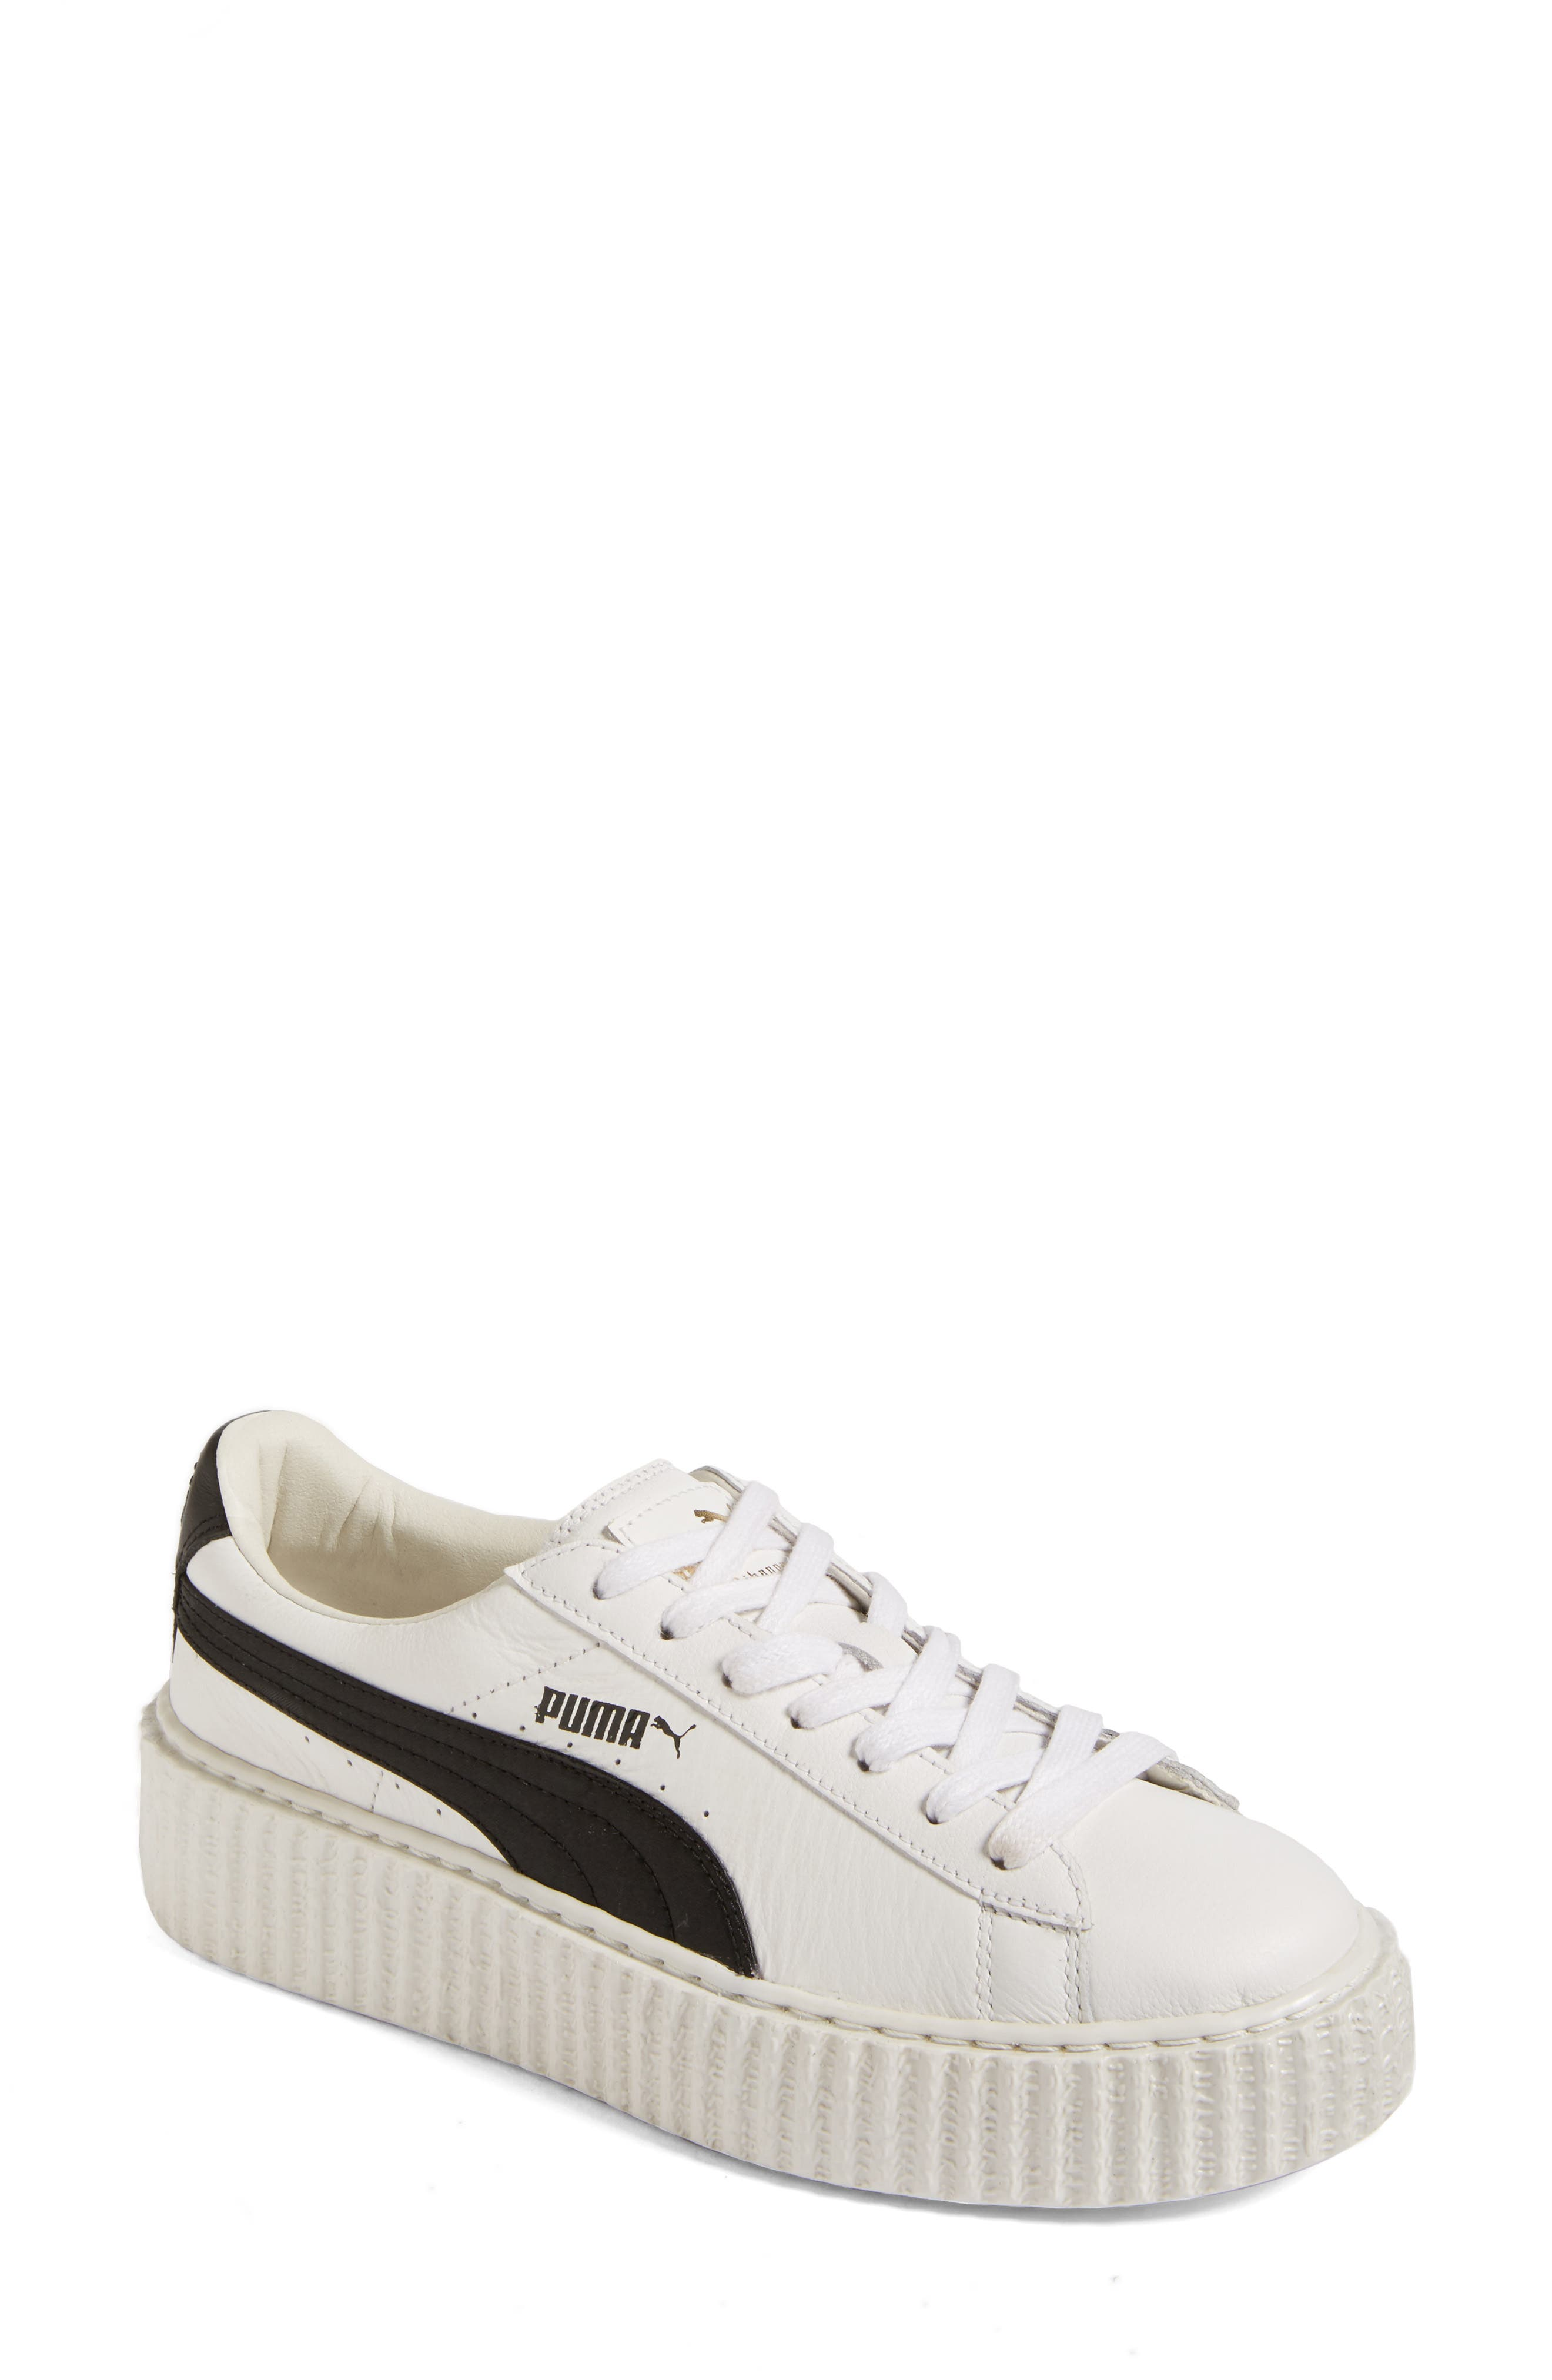 FENTY PUMA by Rihanna Creeper Sneaker,                         Main,                         color, White Leather